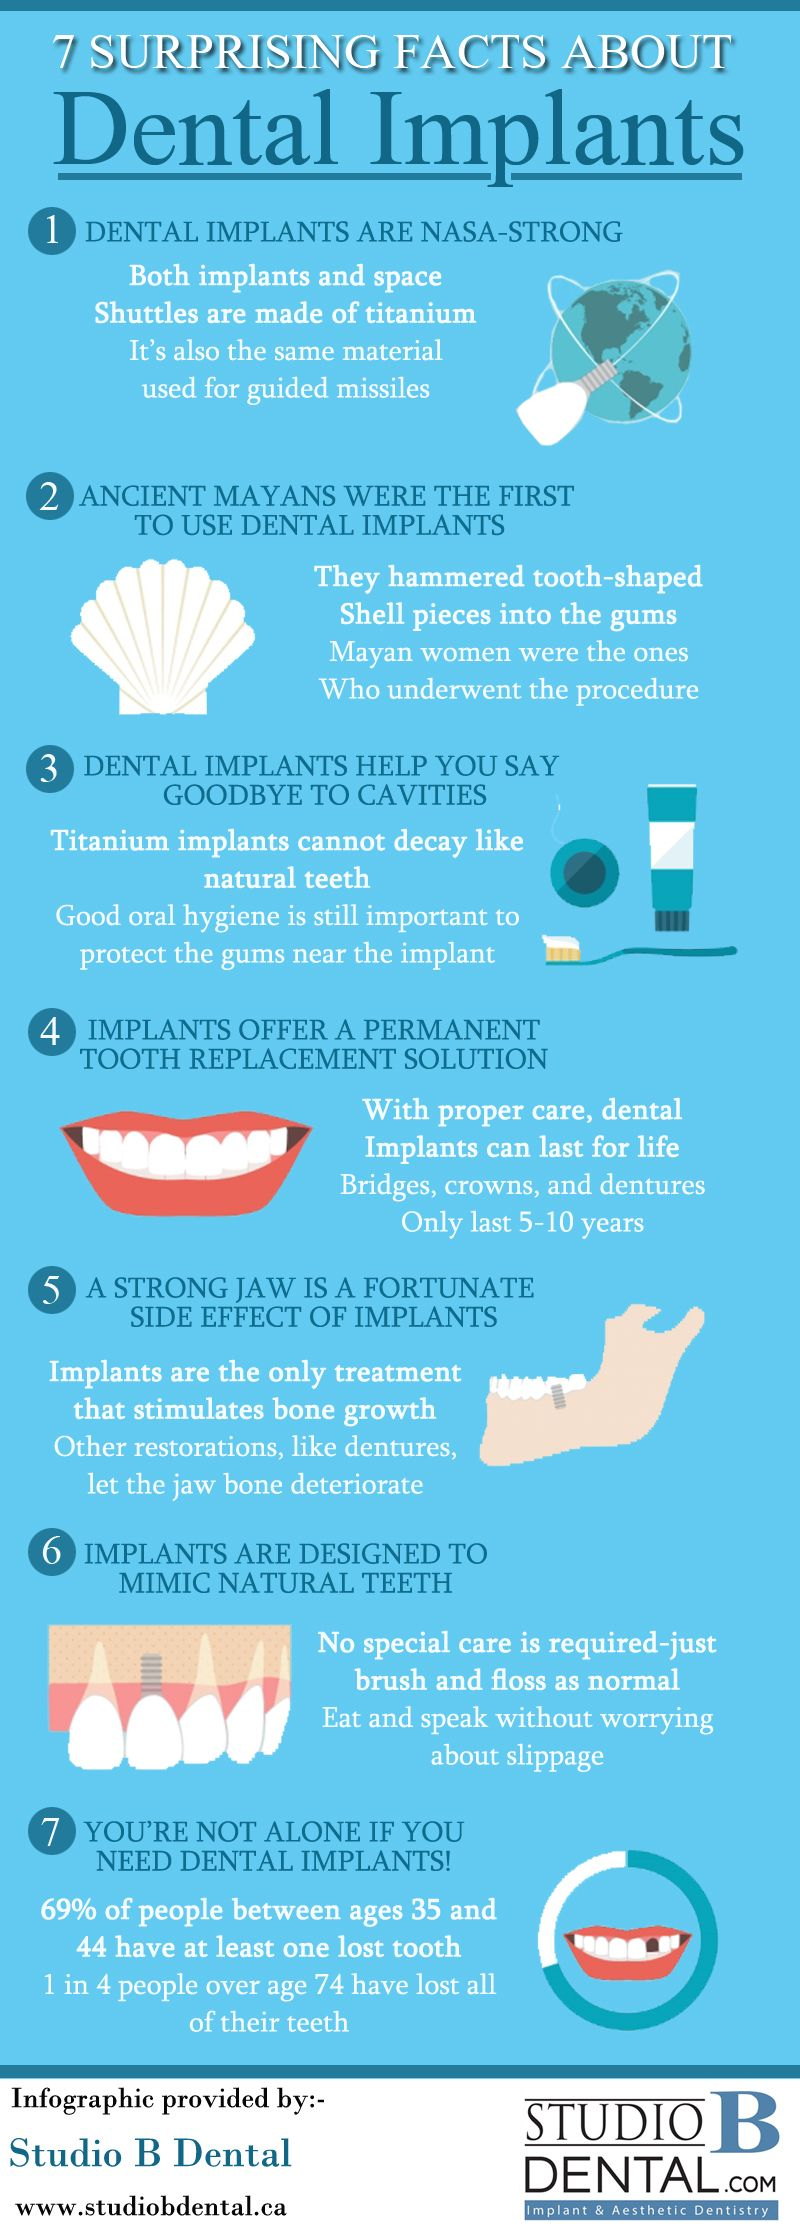 Pin by dave on teeth | Pinterest | Dental, Dental facts and